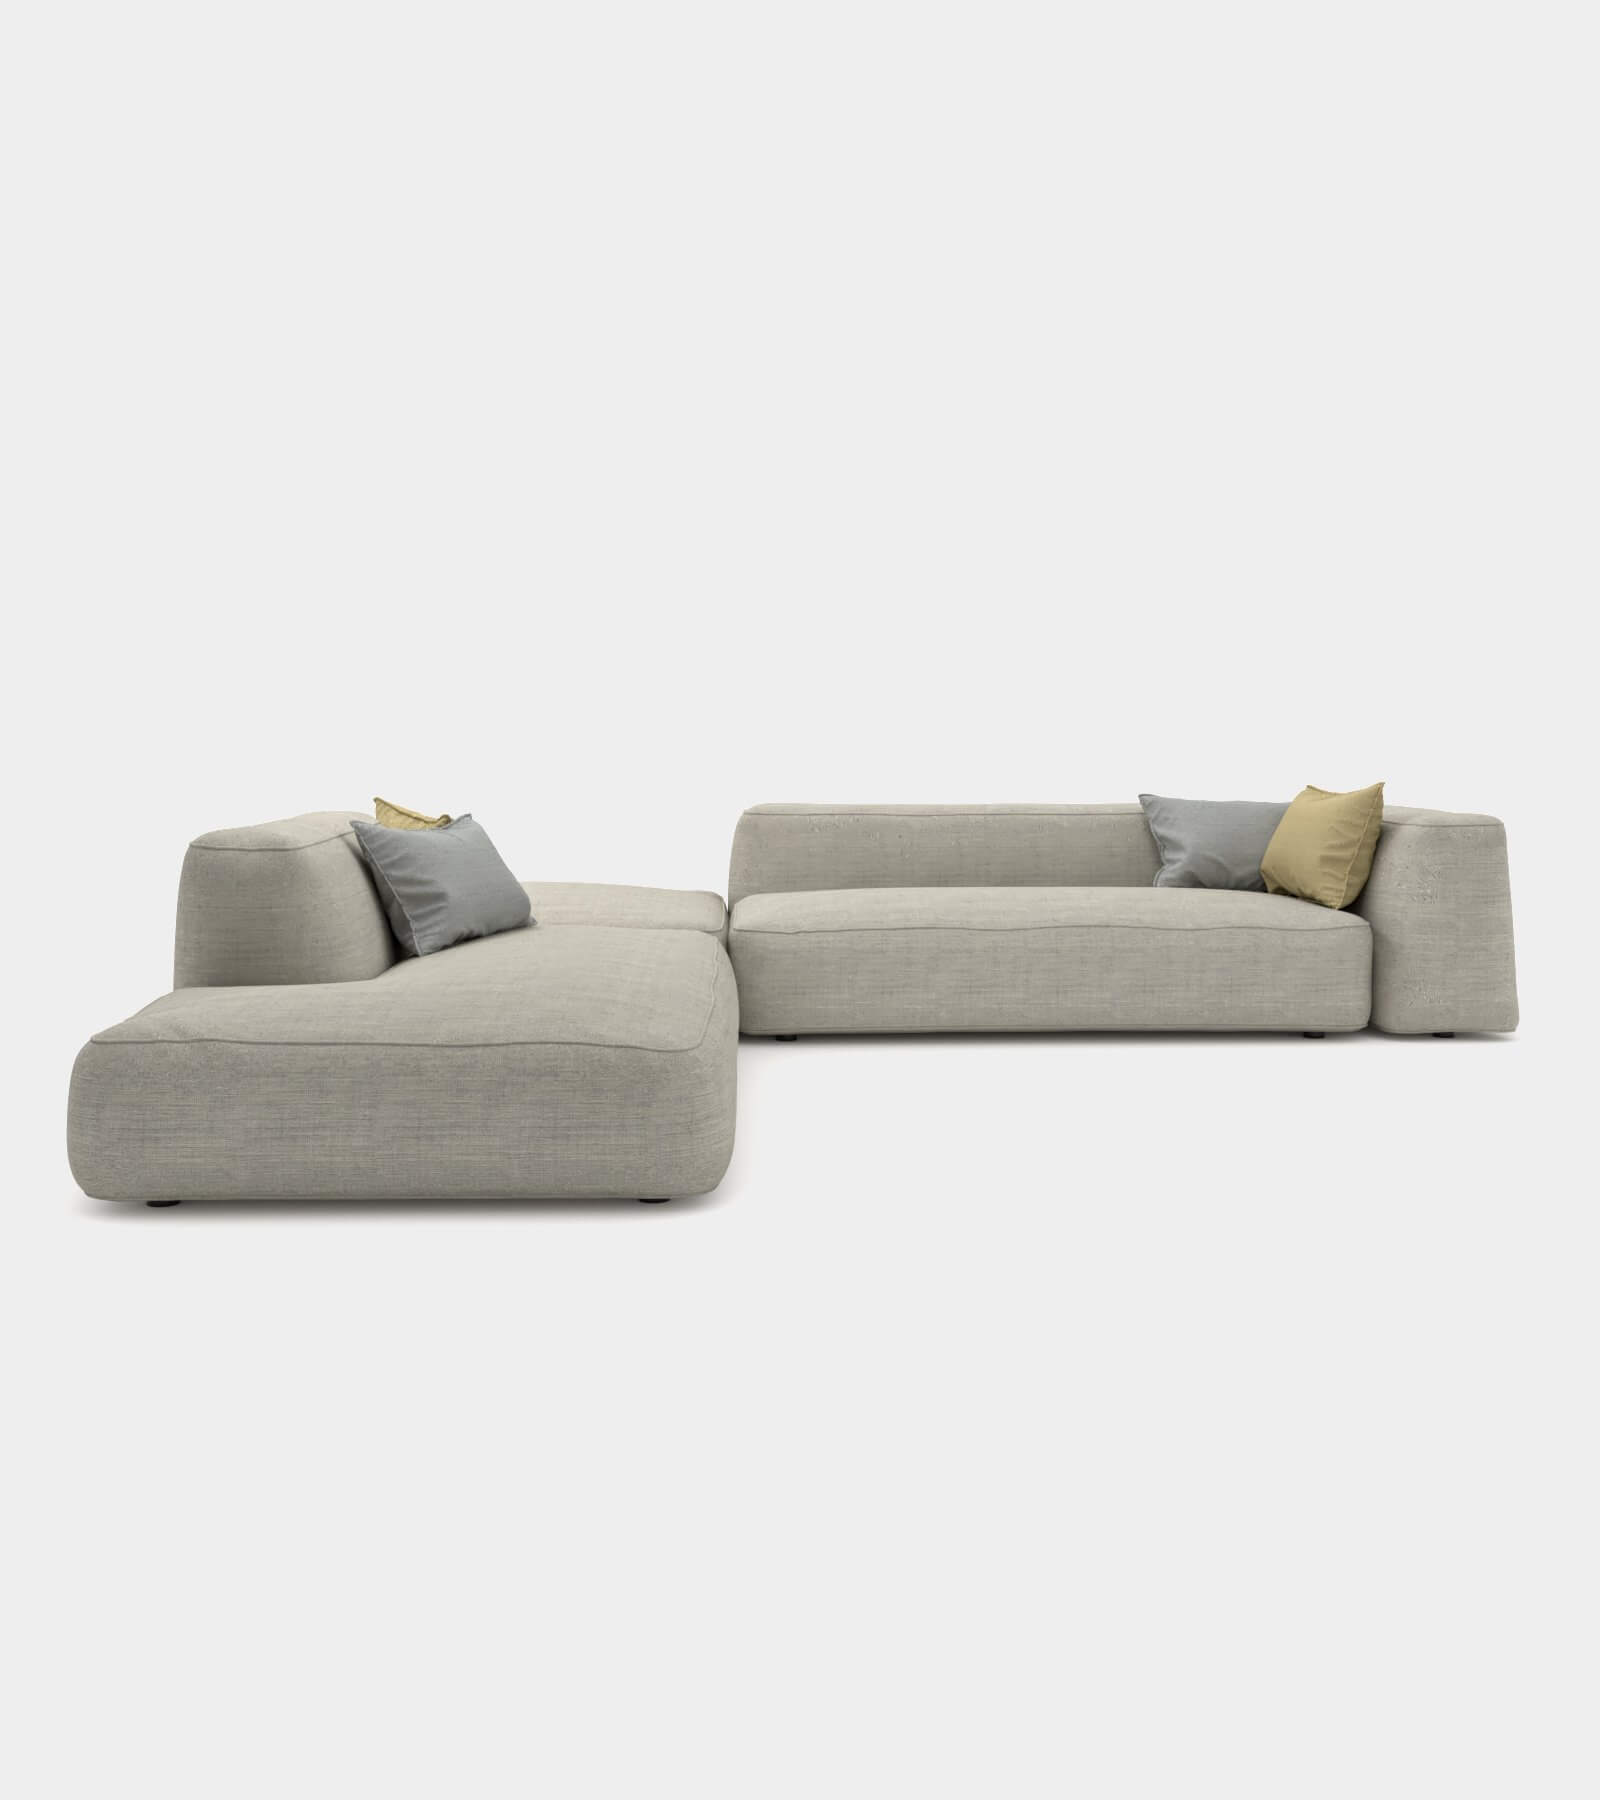 Cozy couch with round edges 3D Model